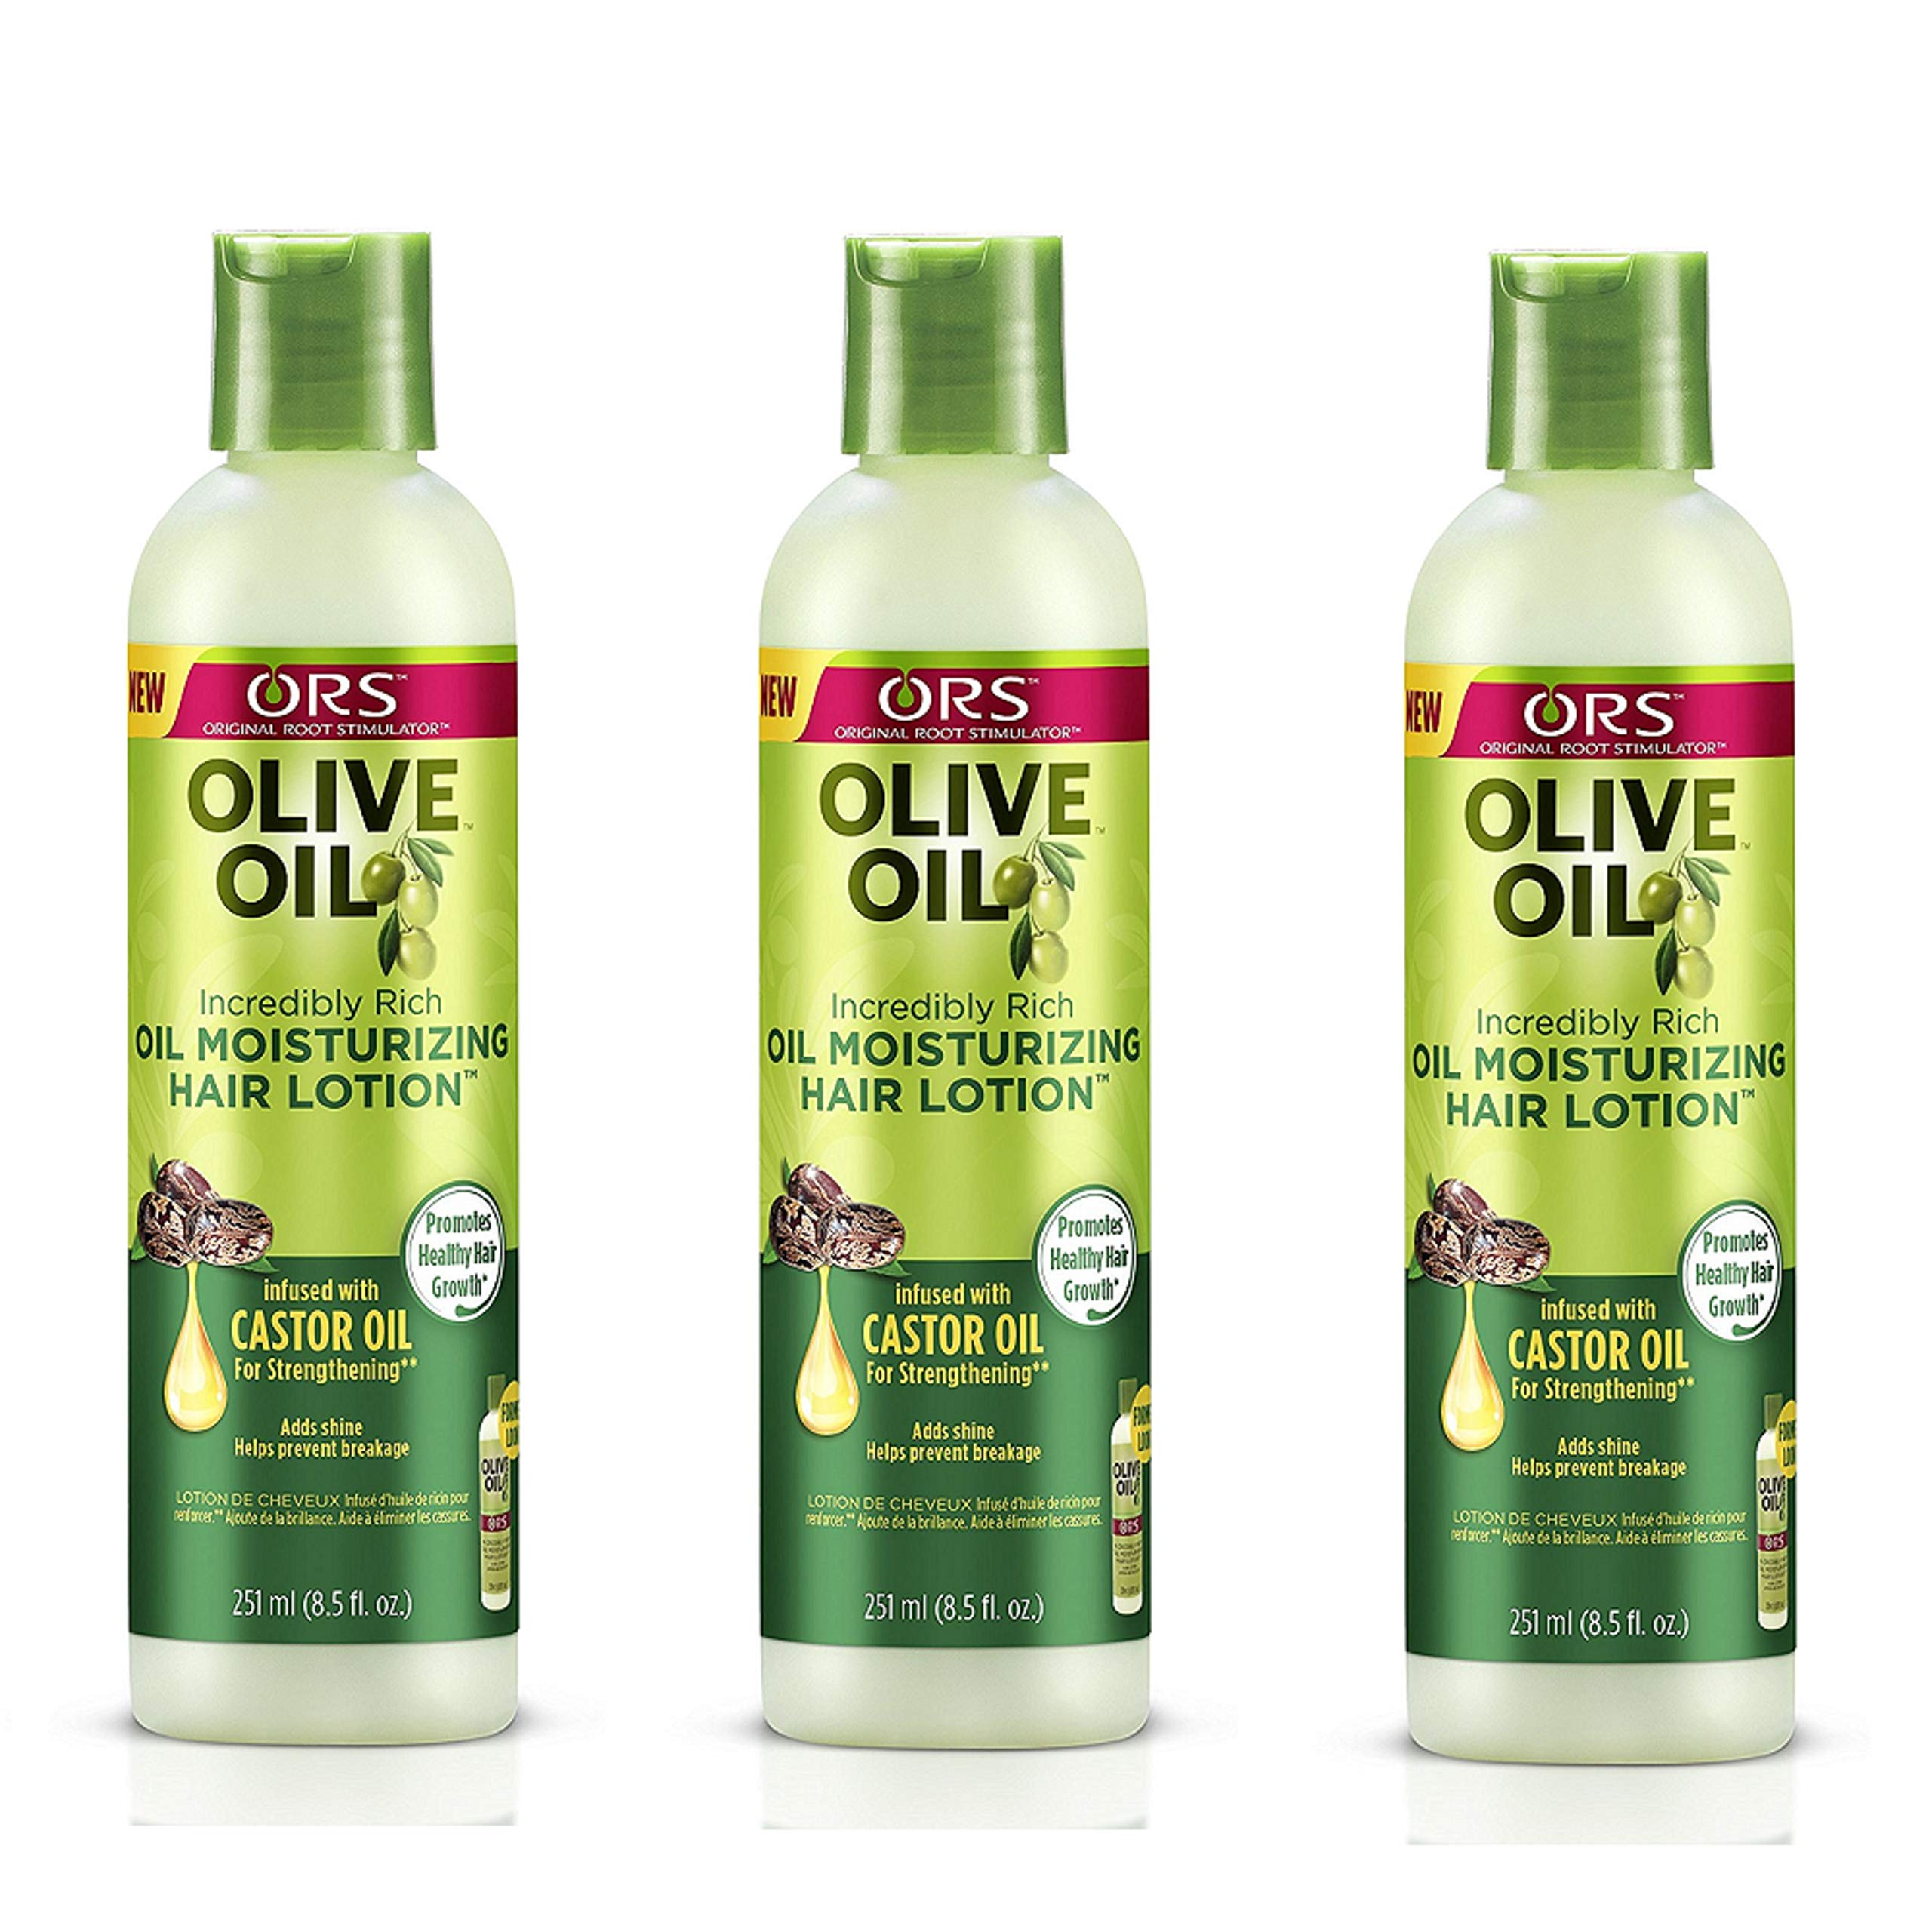 ORS Olive Oil Moisturizing Hair Lotion, 8.5 Oz (Pack of 3) by ORS